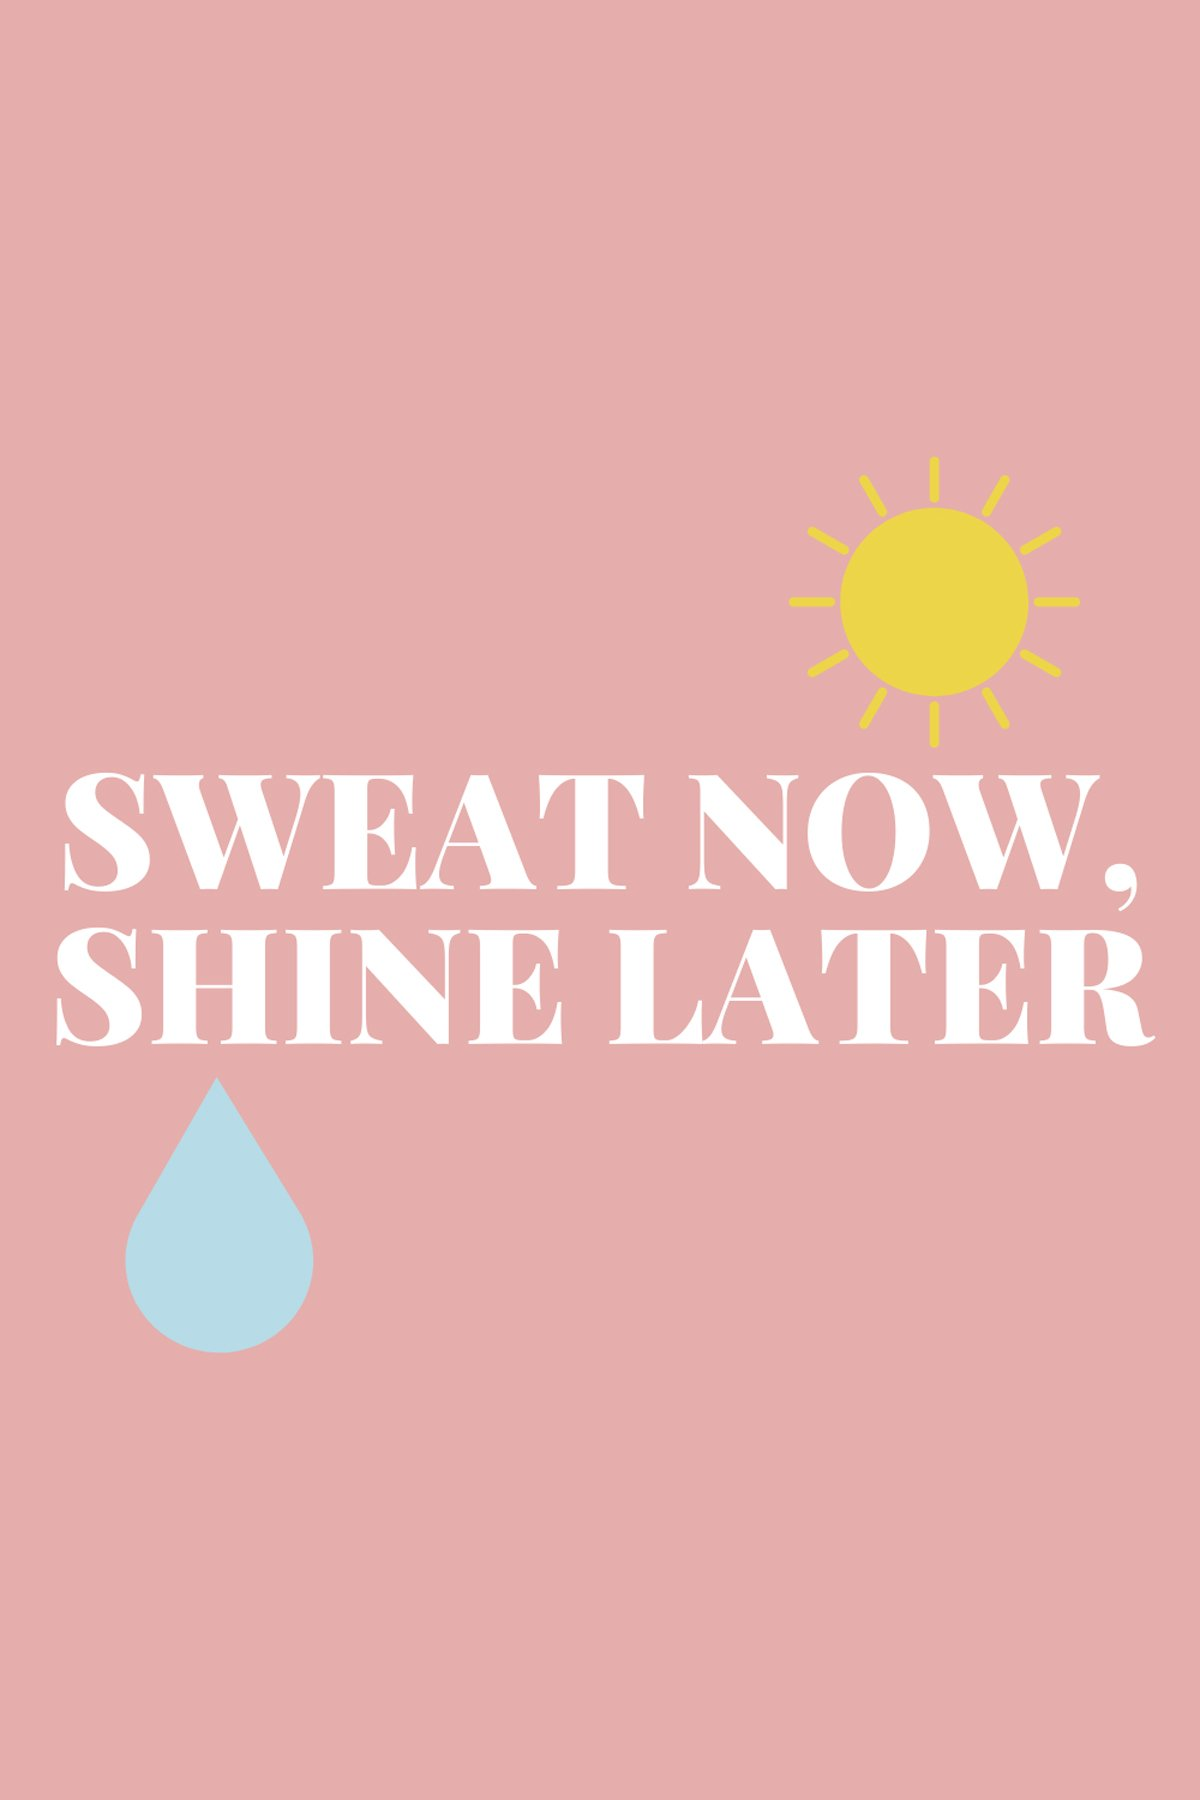 Motivational Sayings For Summer Workout